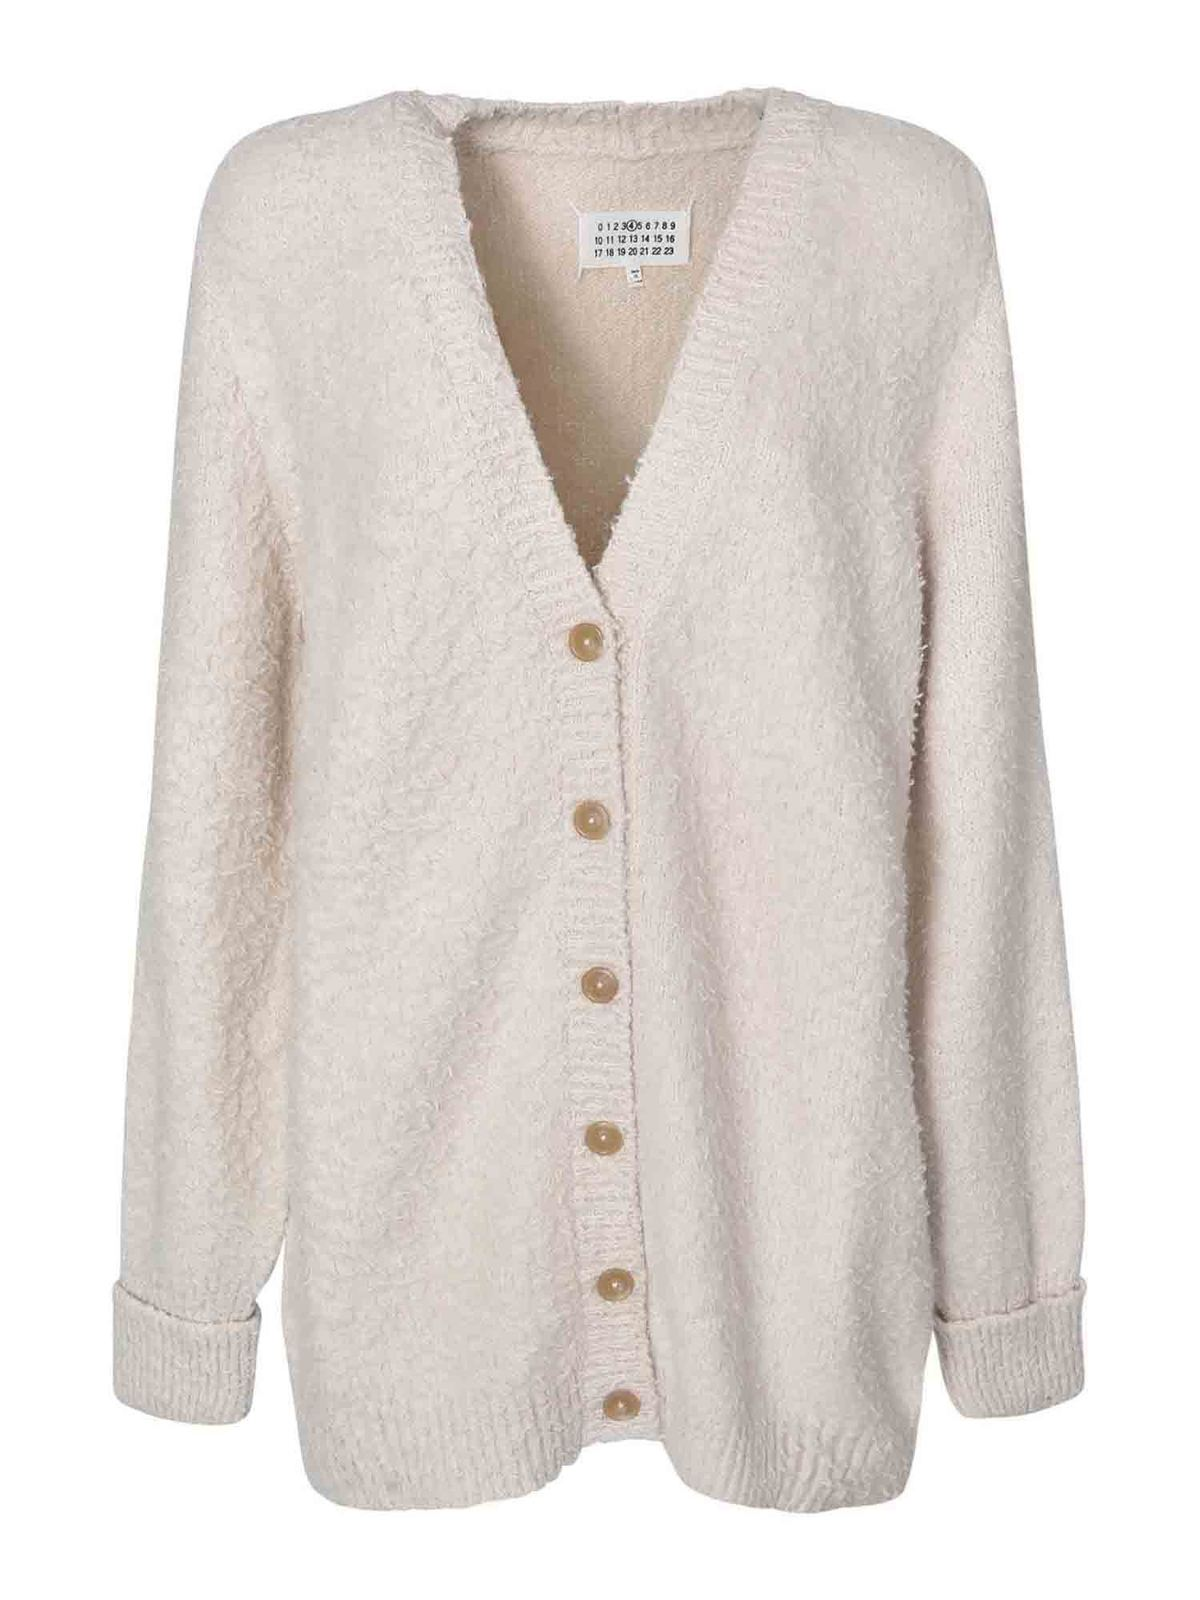 MAISON MARGIELA V-NECK CARDIGAN IN IVORY COLOR